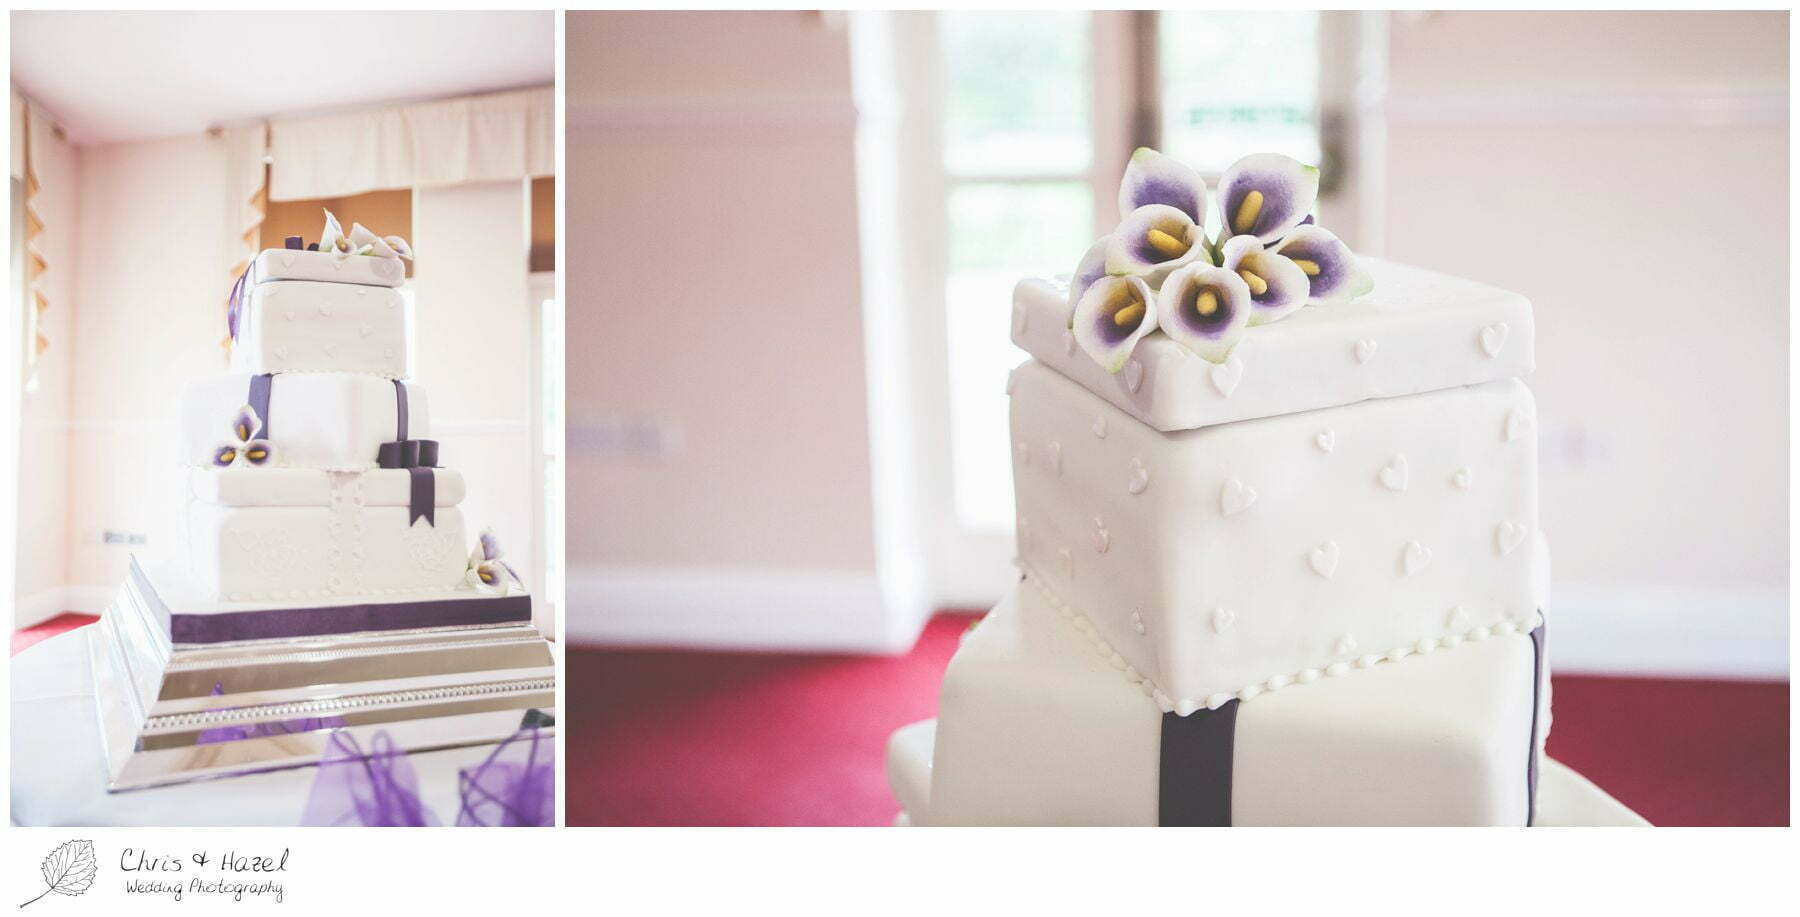 wedding cake, bagden hall wedding venue, documentary wedding photography, denny dale, huddersfield, Wedding Photographer, Bagden Hall, Wedding Photography, Chris and Hazel Wedding Photography, Alex tomenson, Vicky hunt